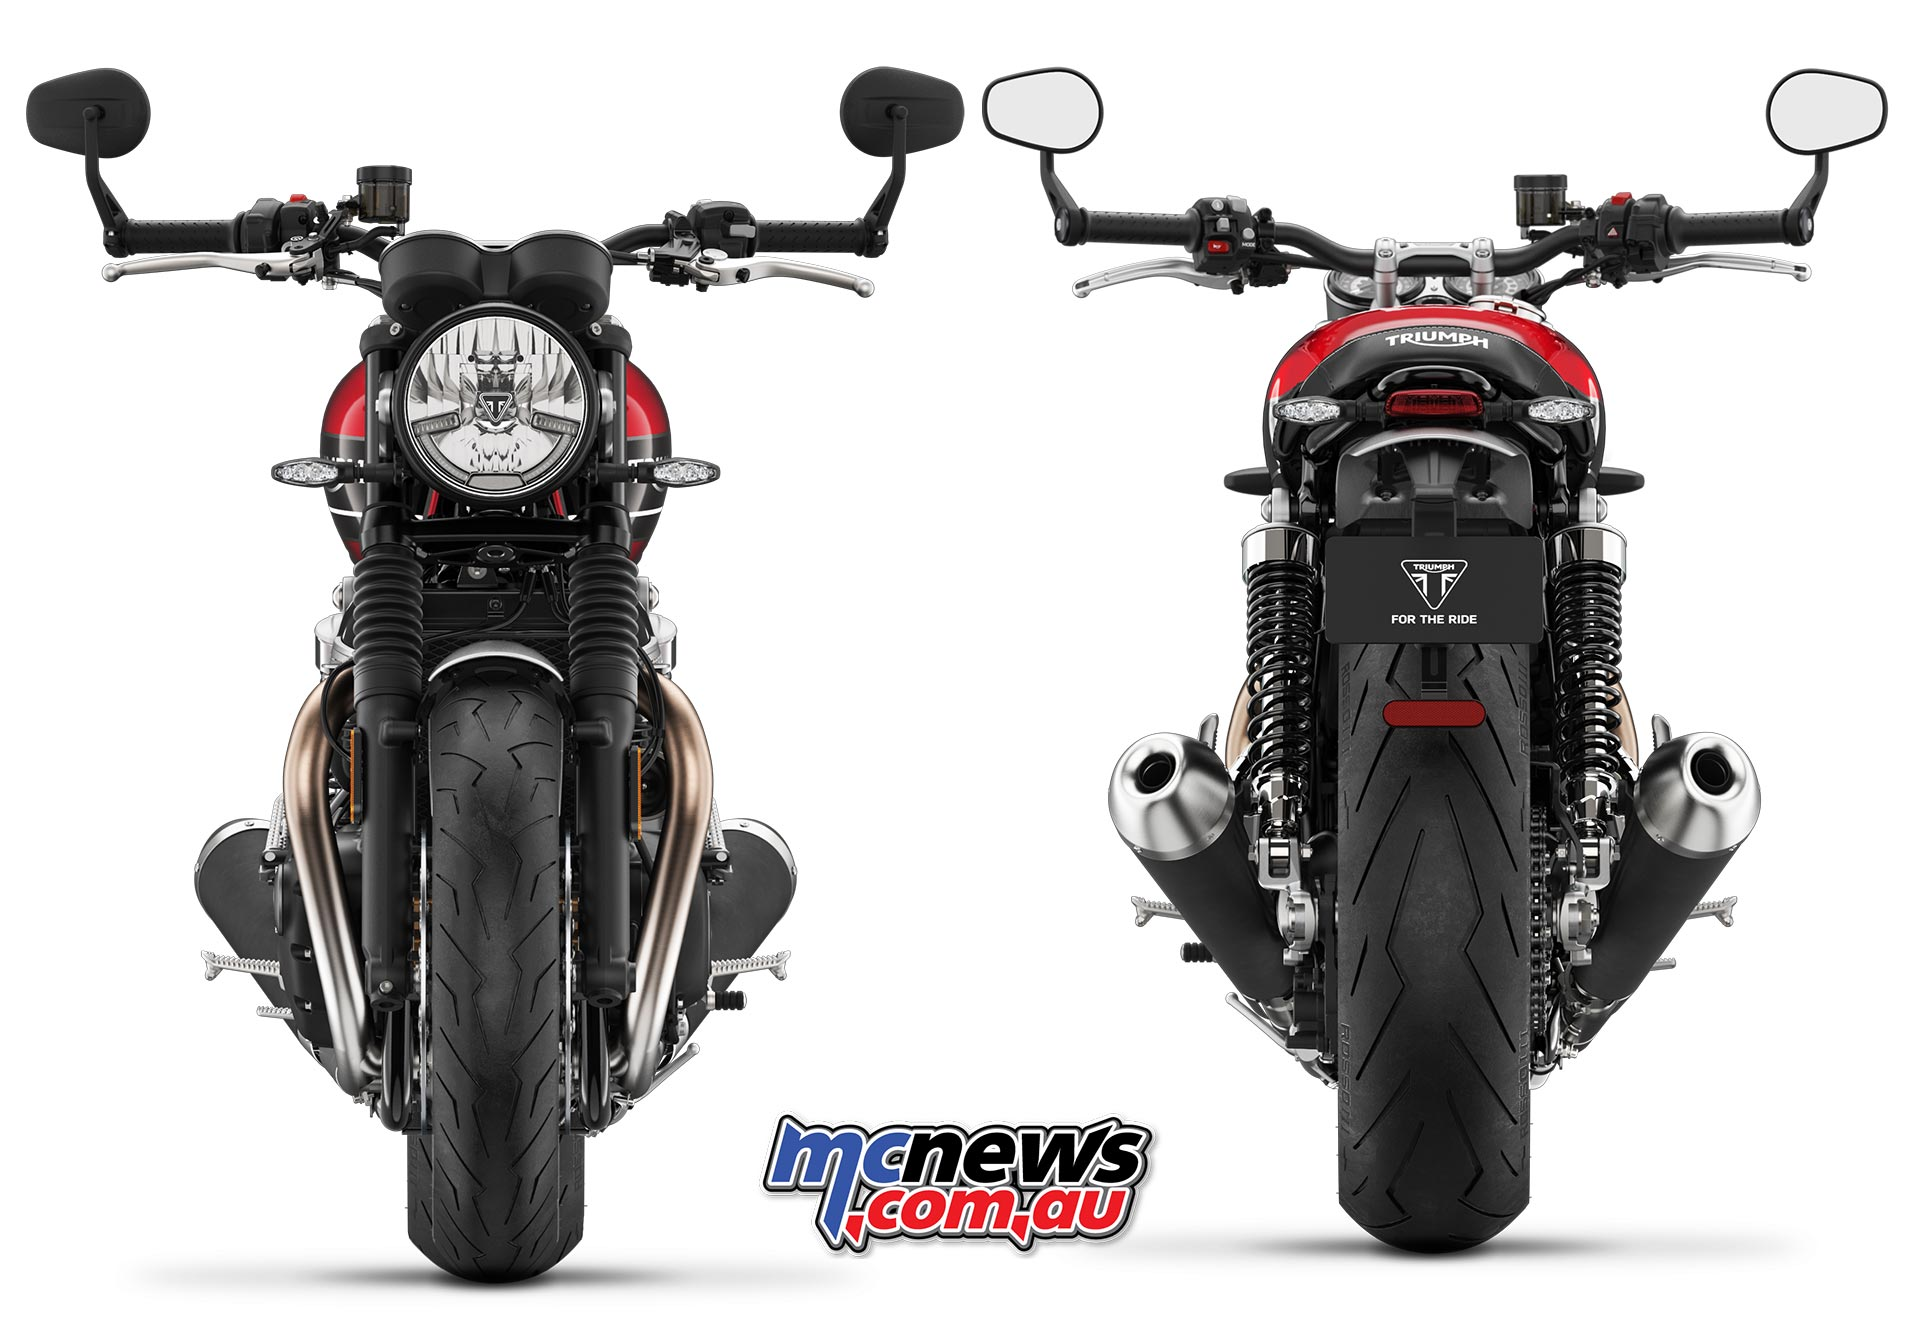 2019 Triumph Speed Twin 196kg 112 Nm 96 Hp Motorcycle News Sport And Reviews